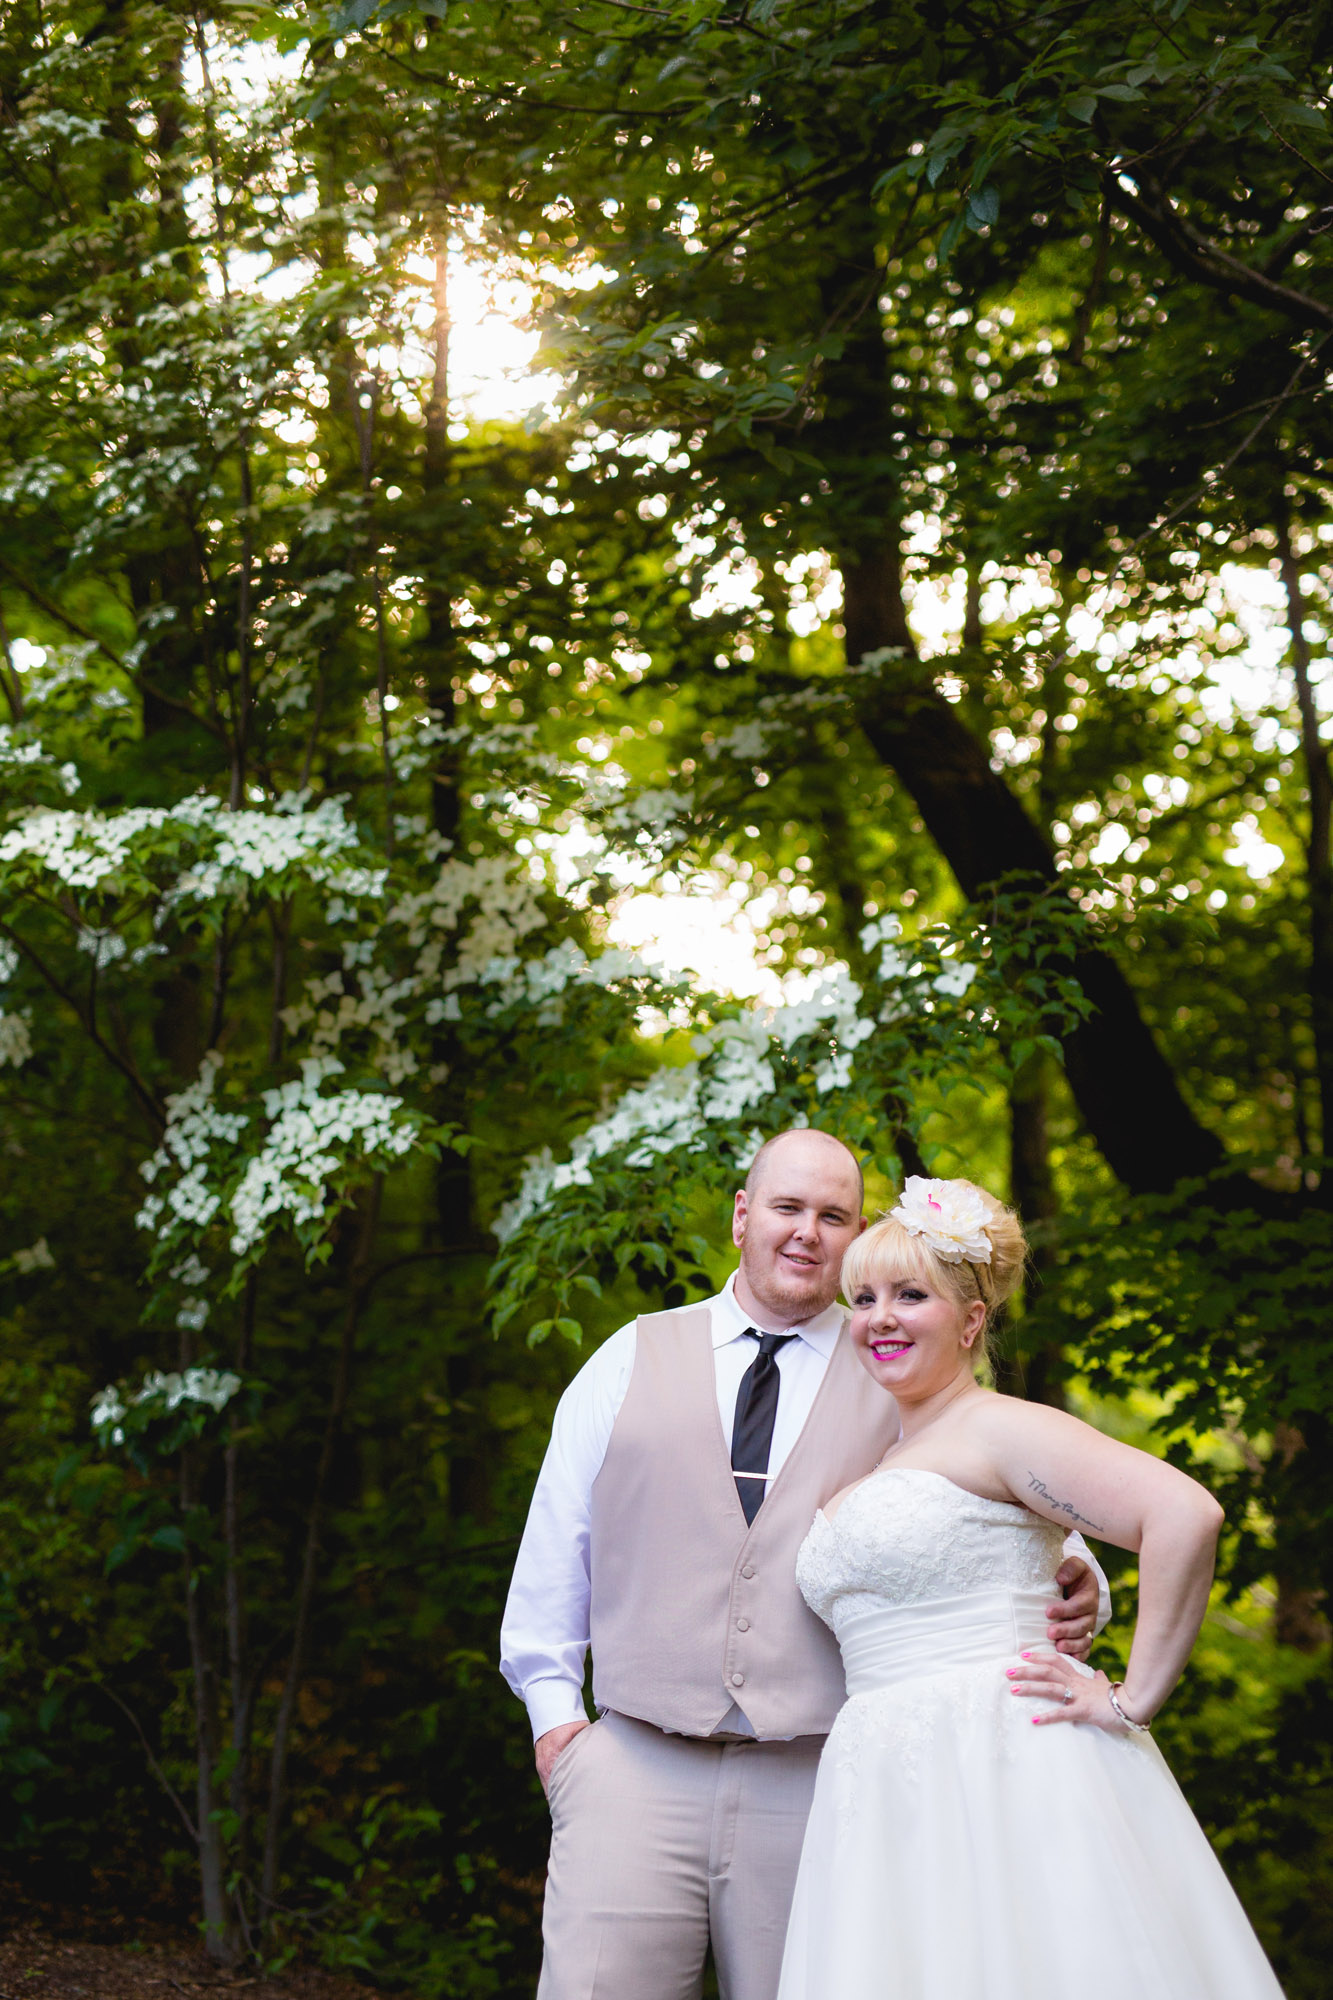 Caitlin & Joe's Stroudsmoor Woodsgate Wedding 73